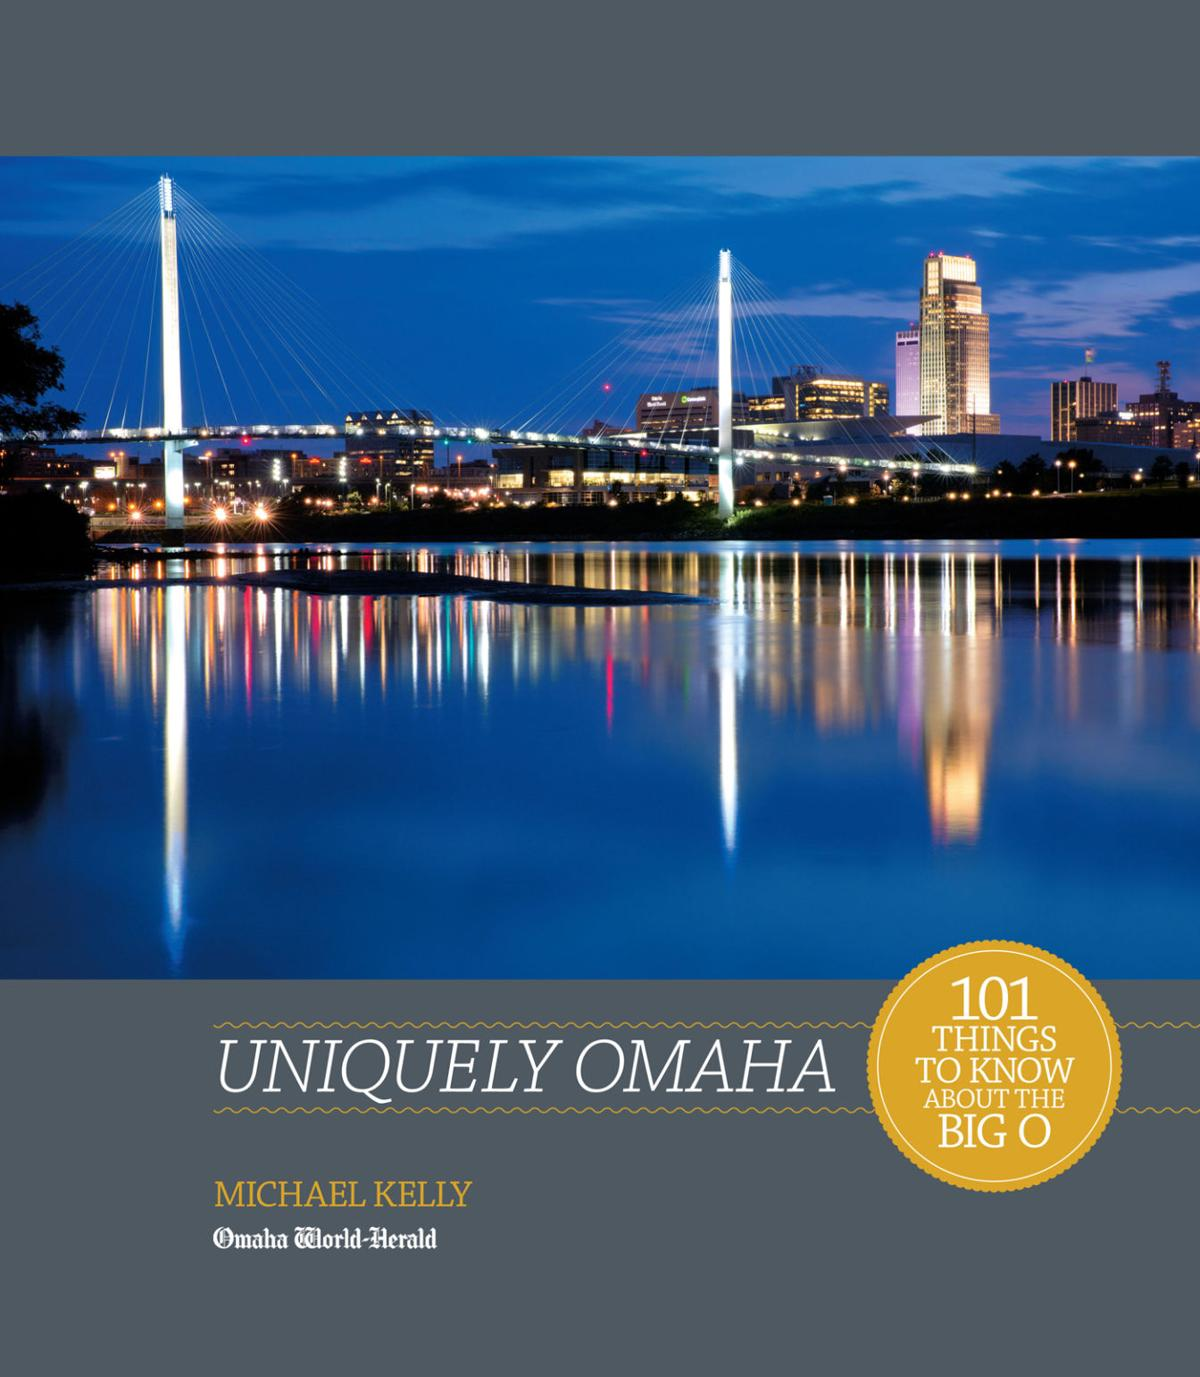 'Uniquely Omaha' Author Happy He Stayed